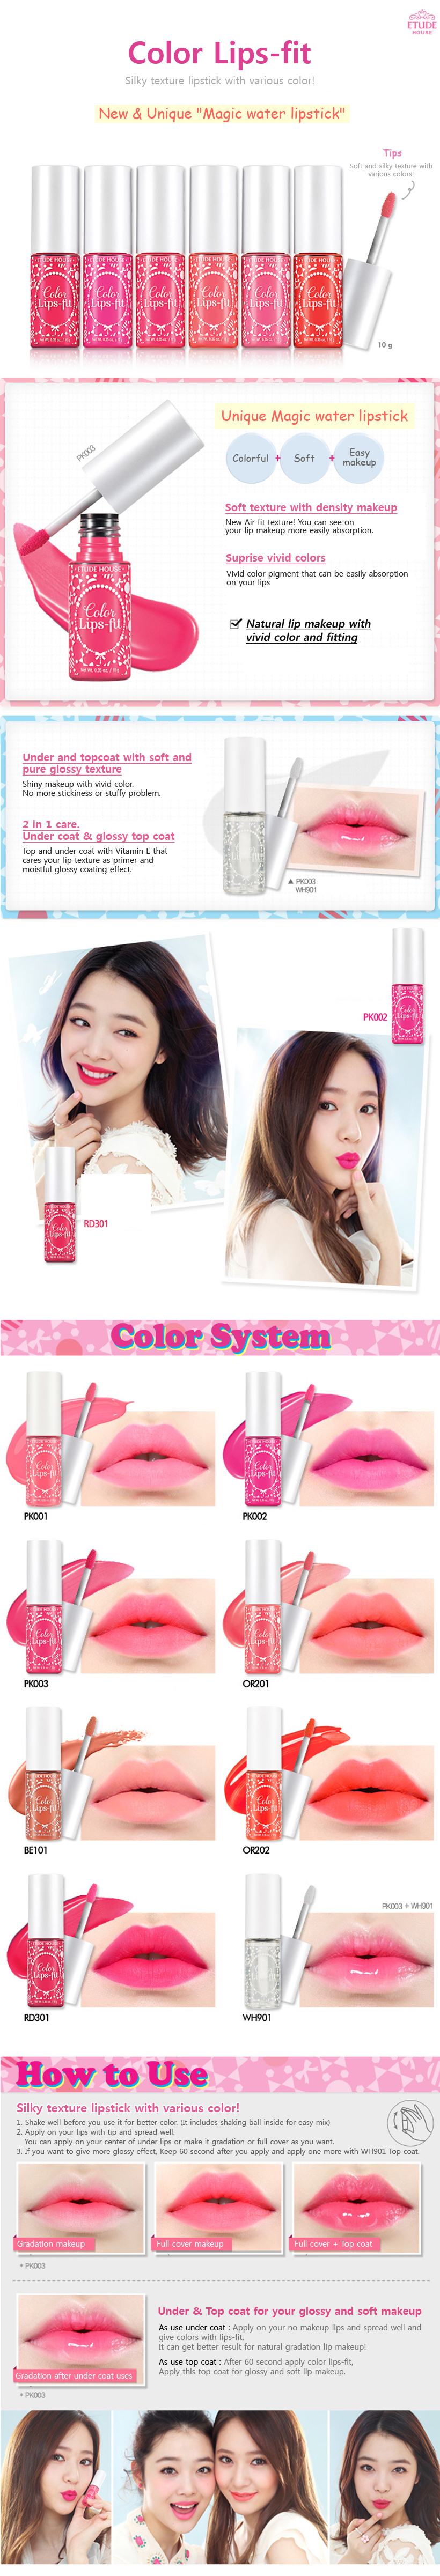 Etude House Korea Jakarta: Etude House Color Lips-Fit 8 color ...